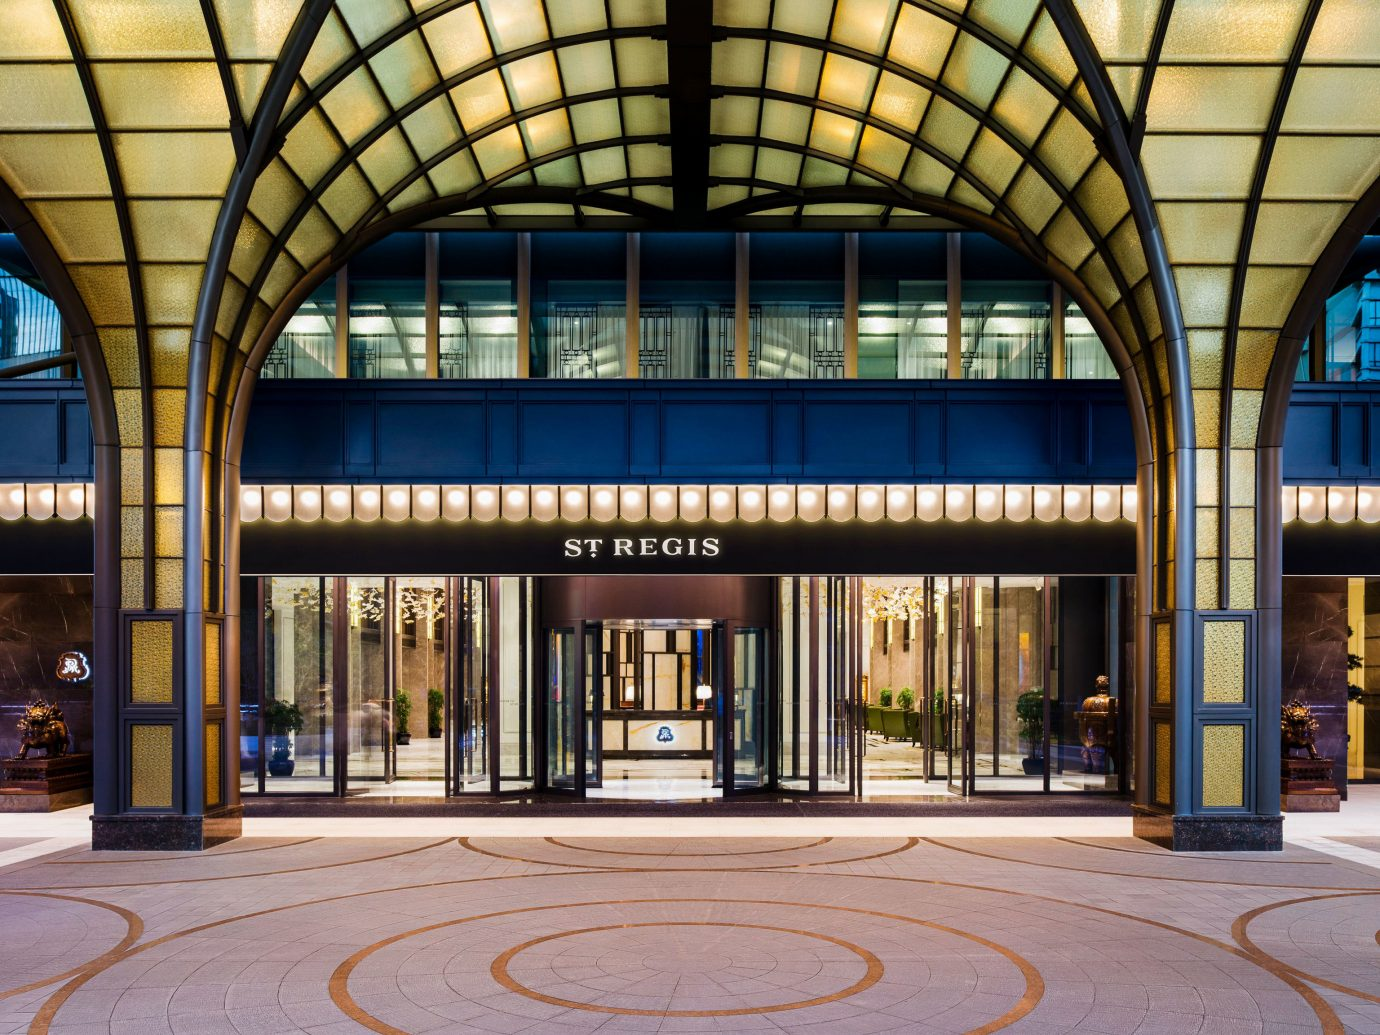 Boutique Hotels Luxury Travel building station Architecture mixed use facade City window shopping mall daylighting arch Lobby symmetry court tall colonnade